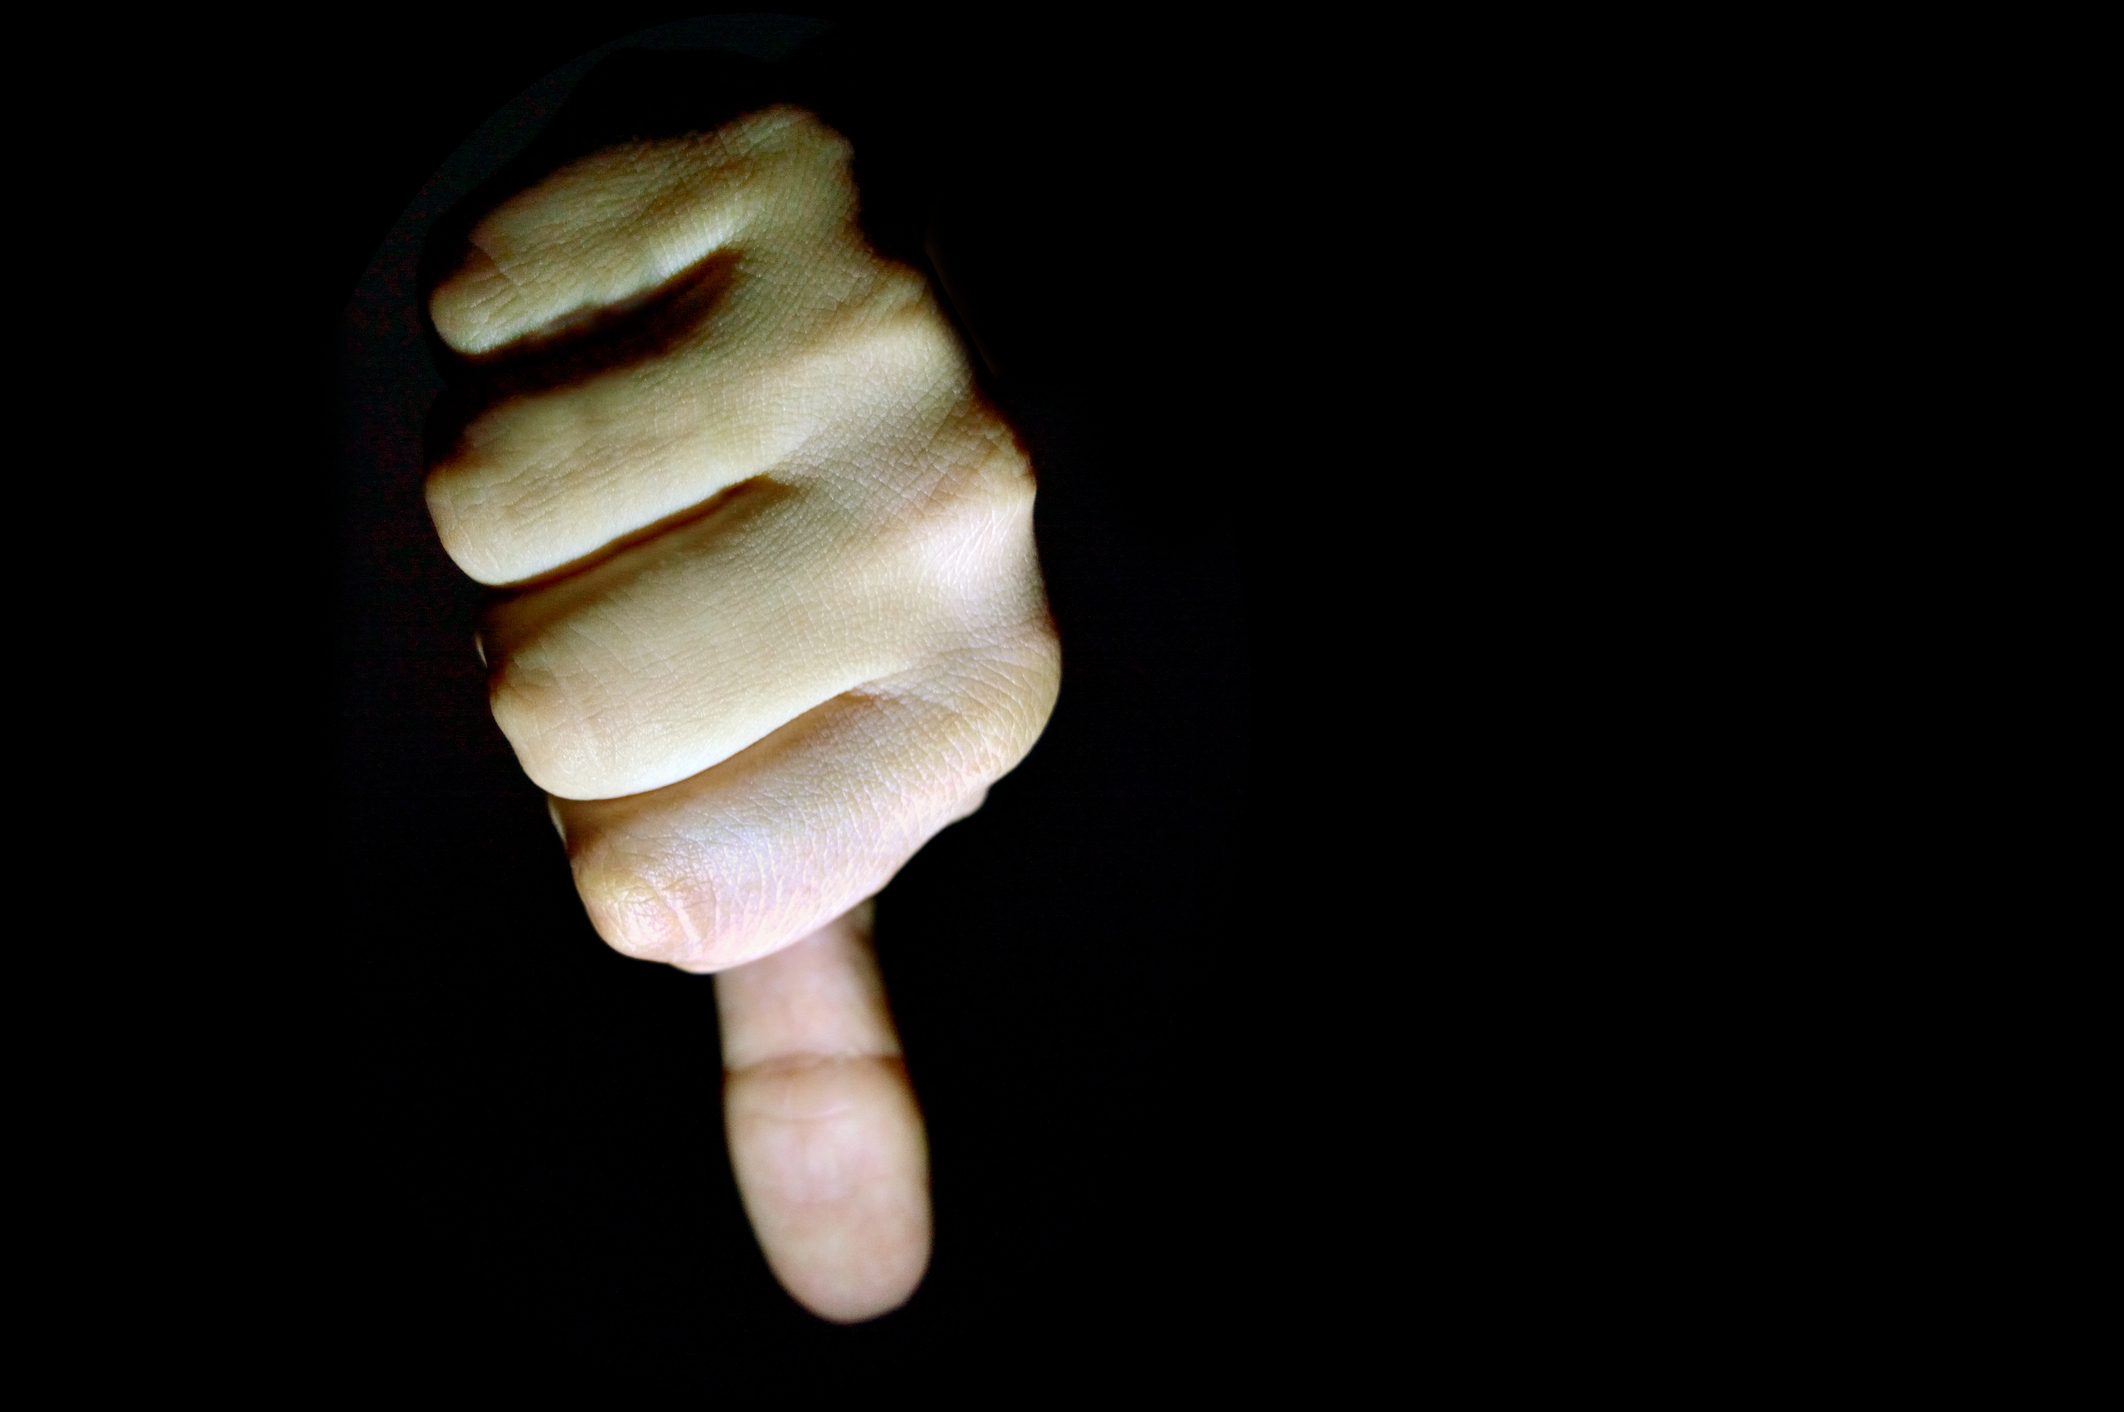 Close-Up Of Human Hand Gesturing Thumbs Down.